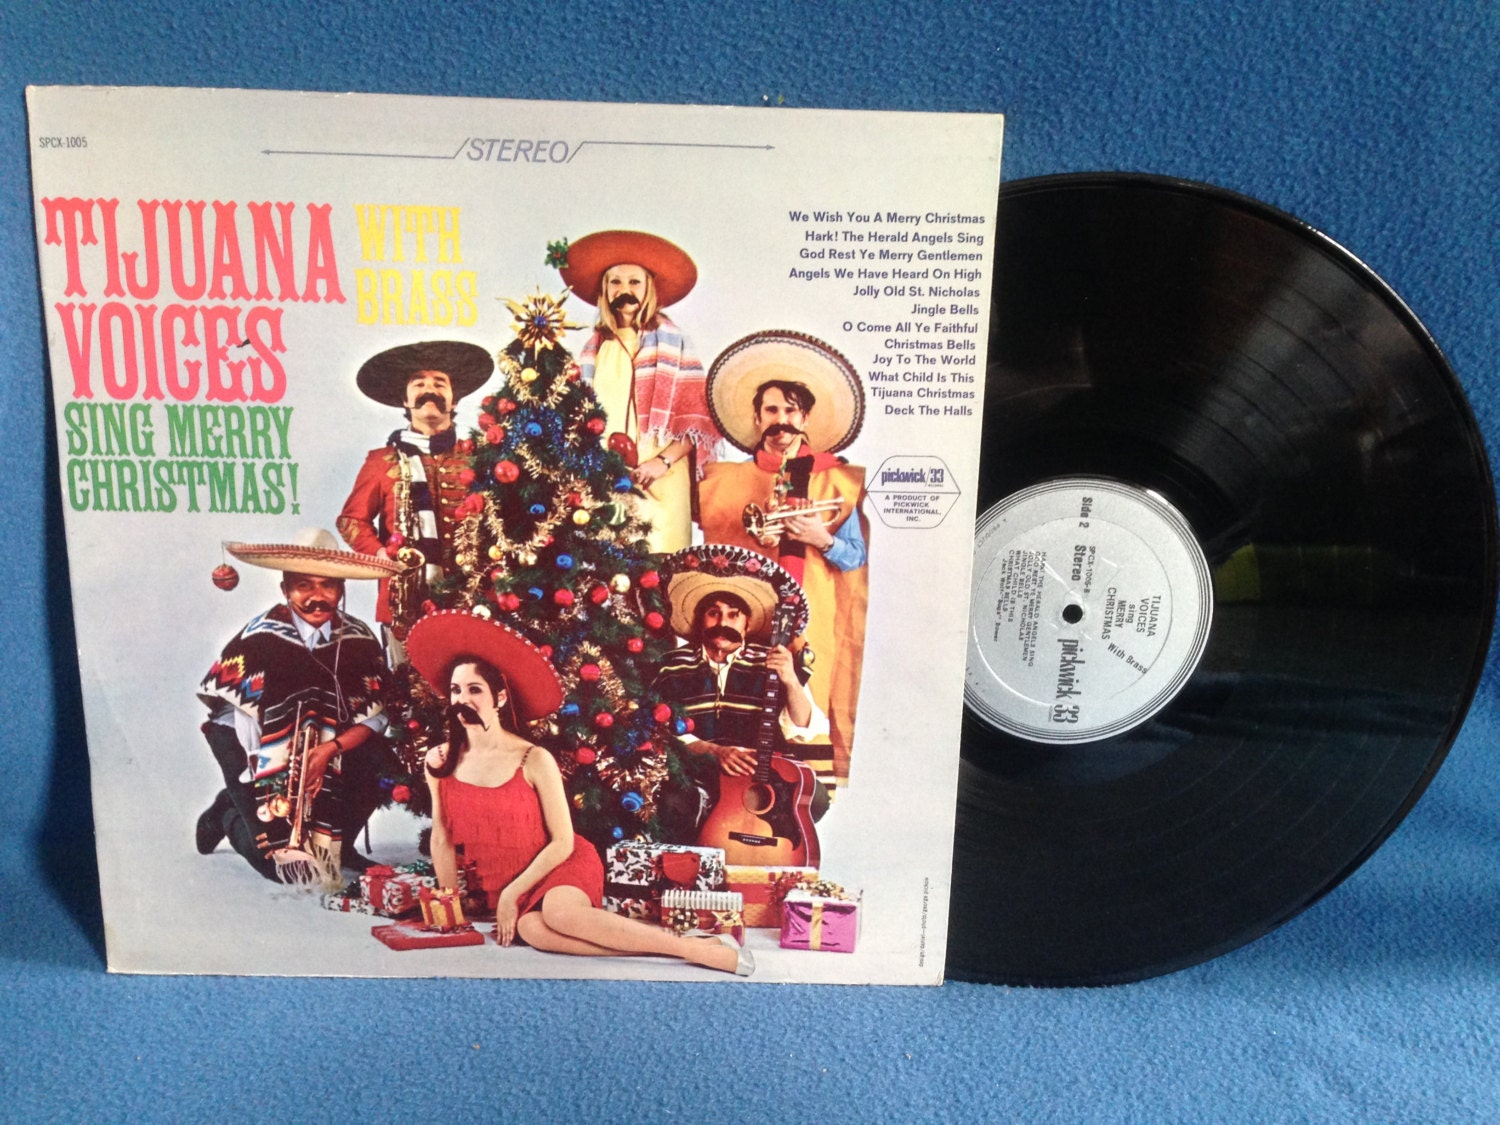 Vintage Tijuana Voices With Brass Sing Merry